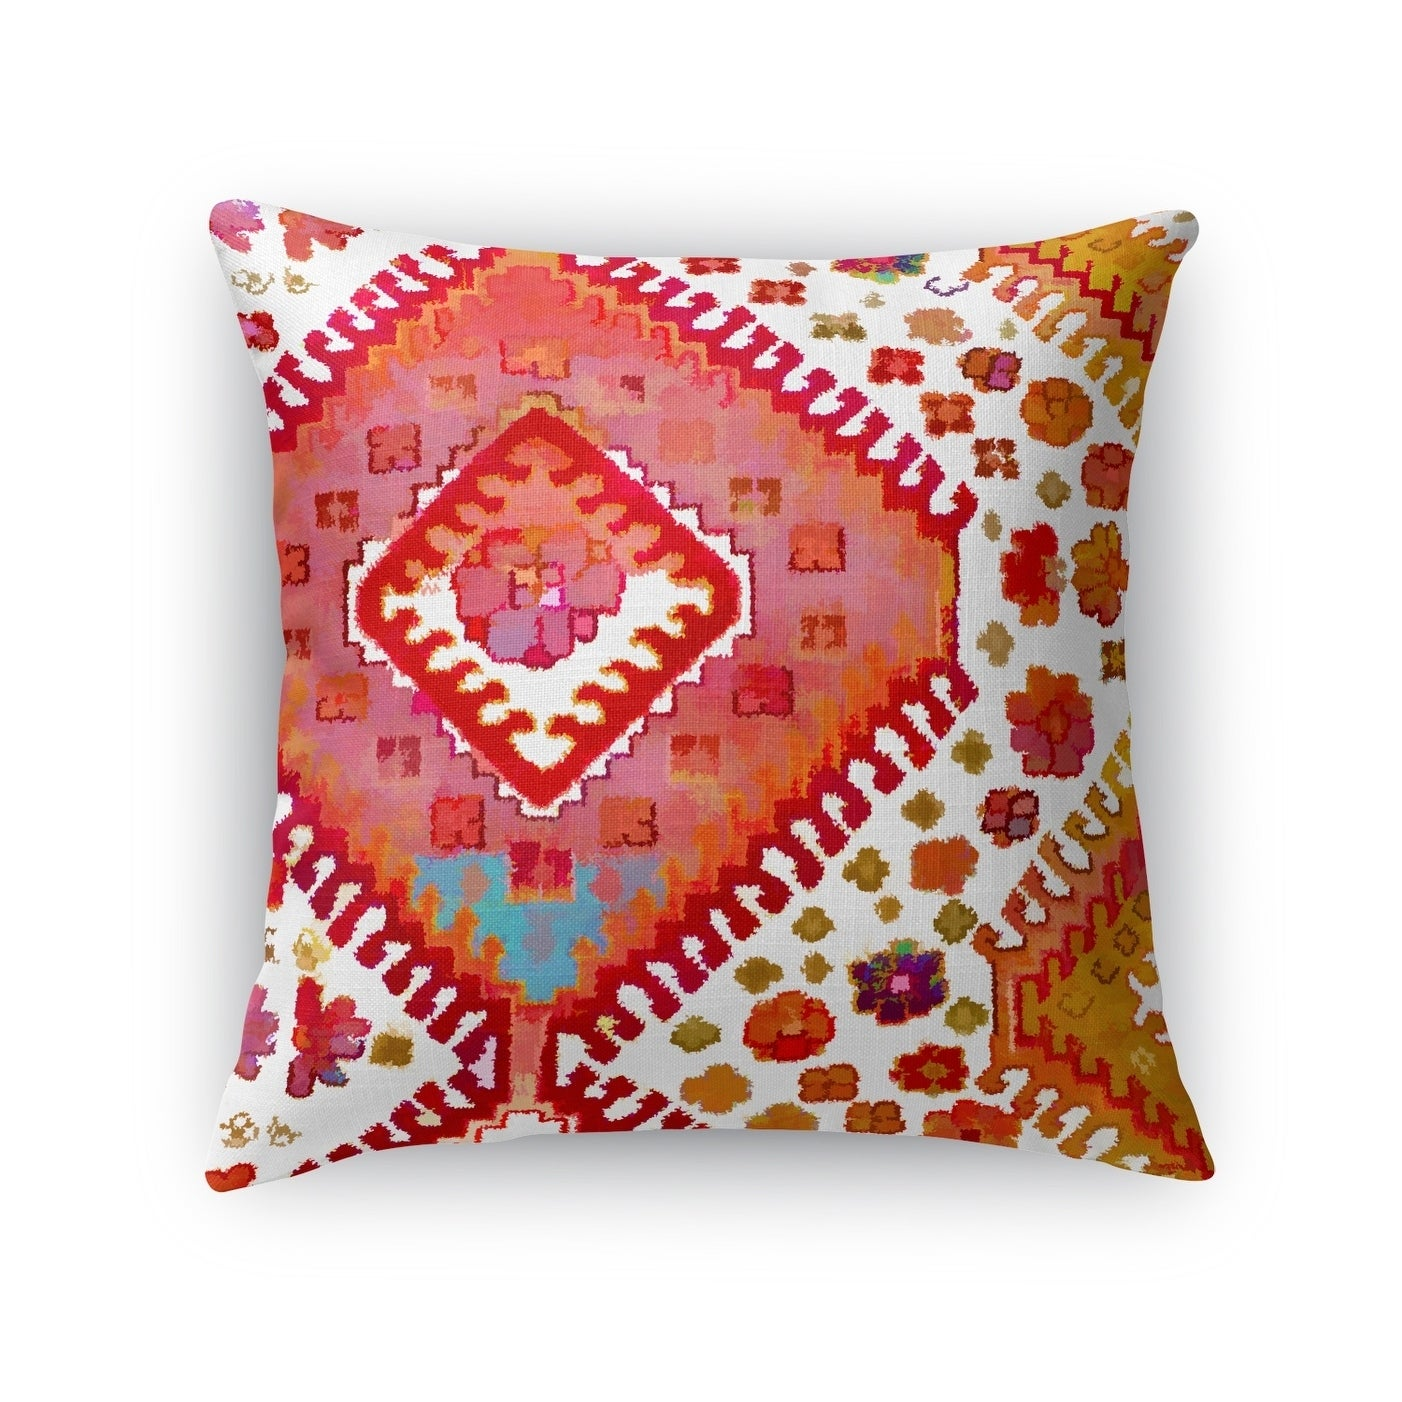 Kavka Designs pink/ blue/ orange arrow accent pillow by terri ellis with insert (24 x 24)